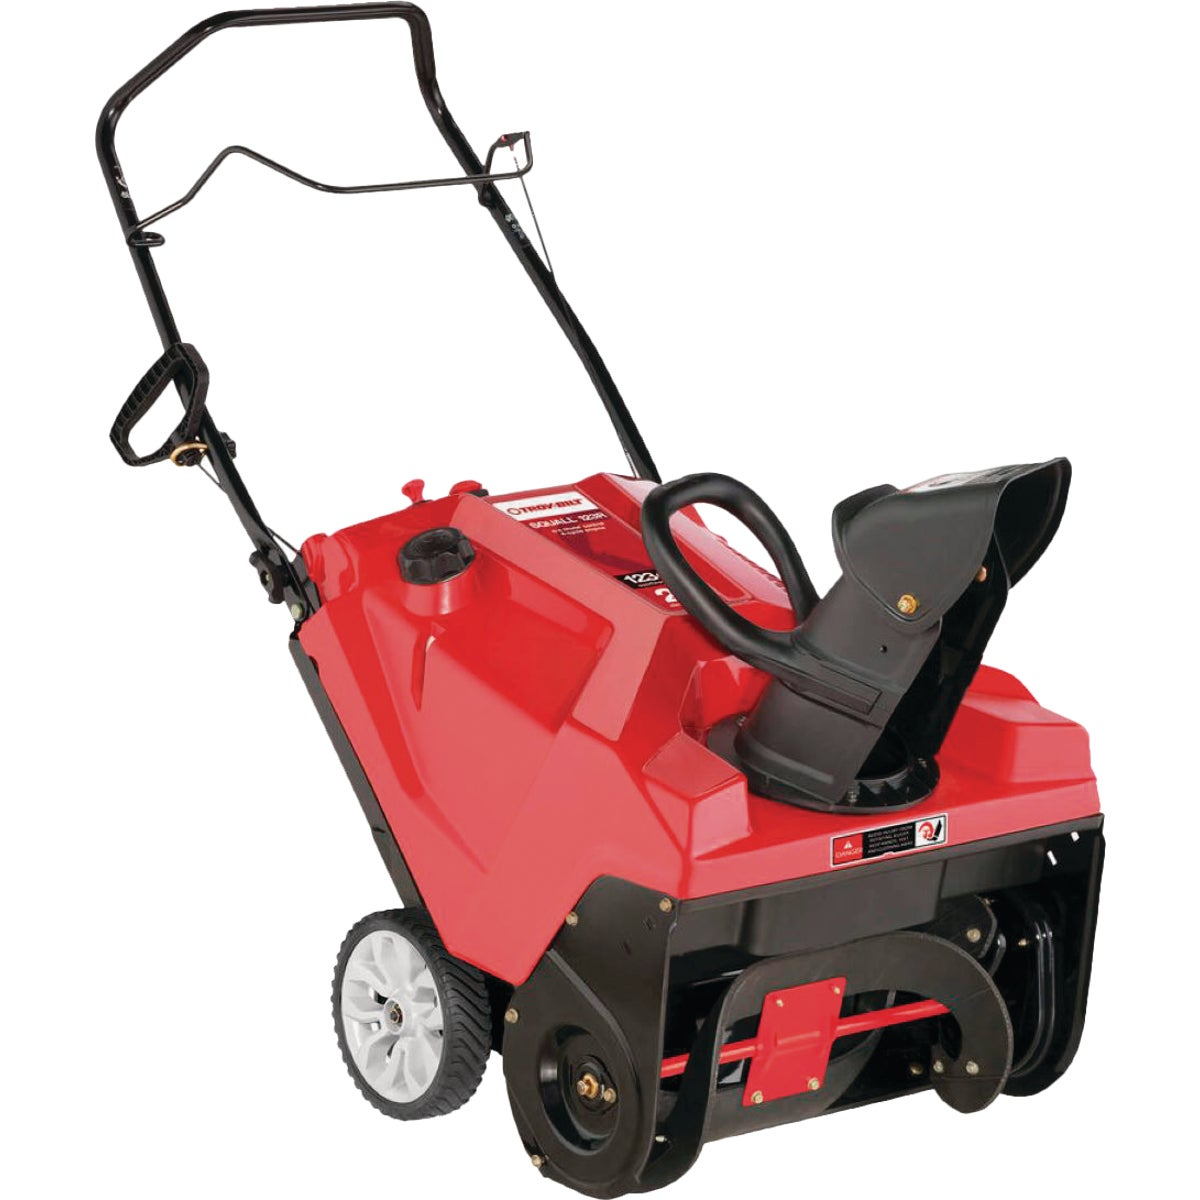 SGL STAGE SNOWTHROWER